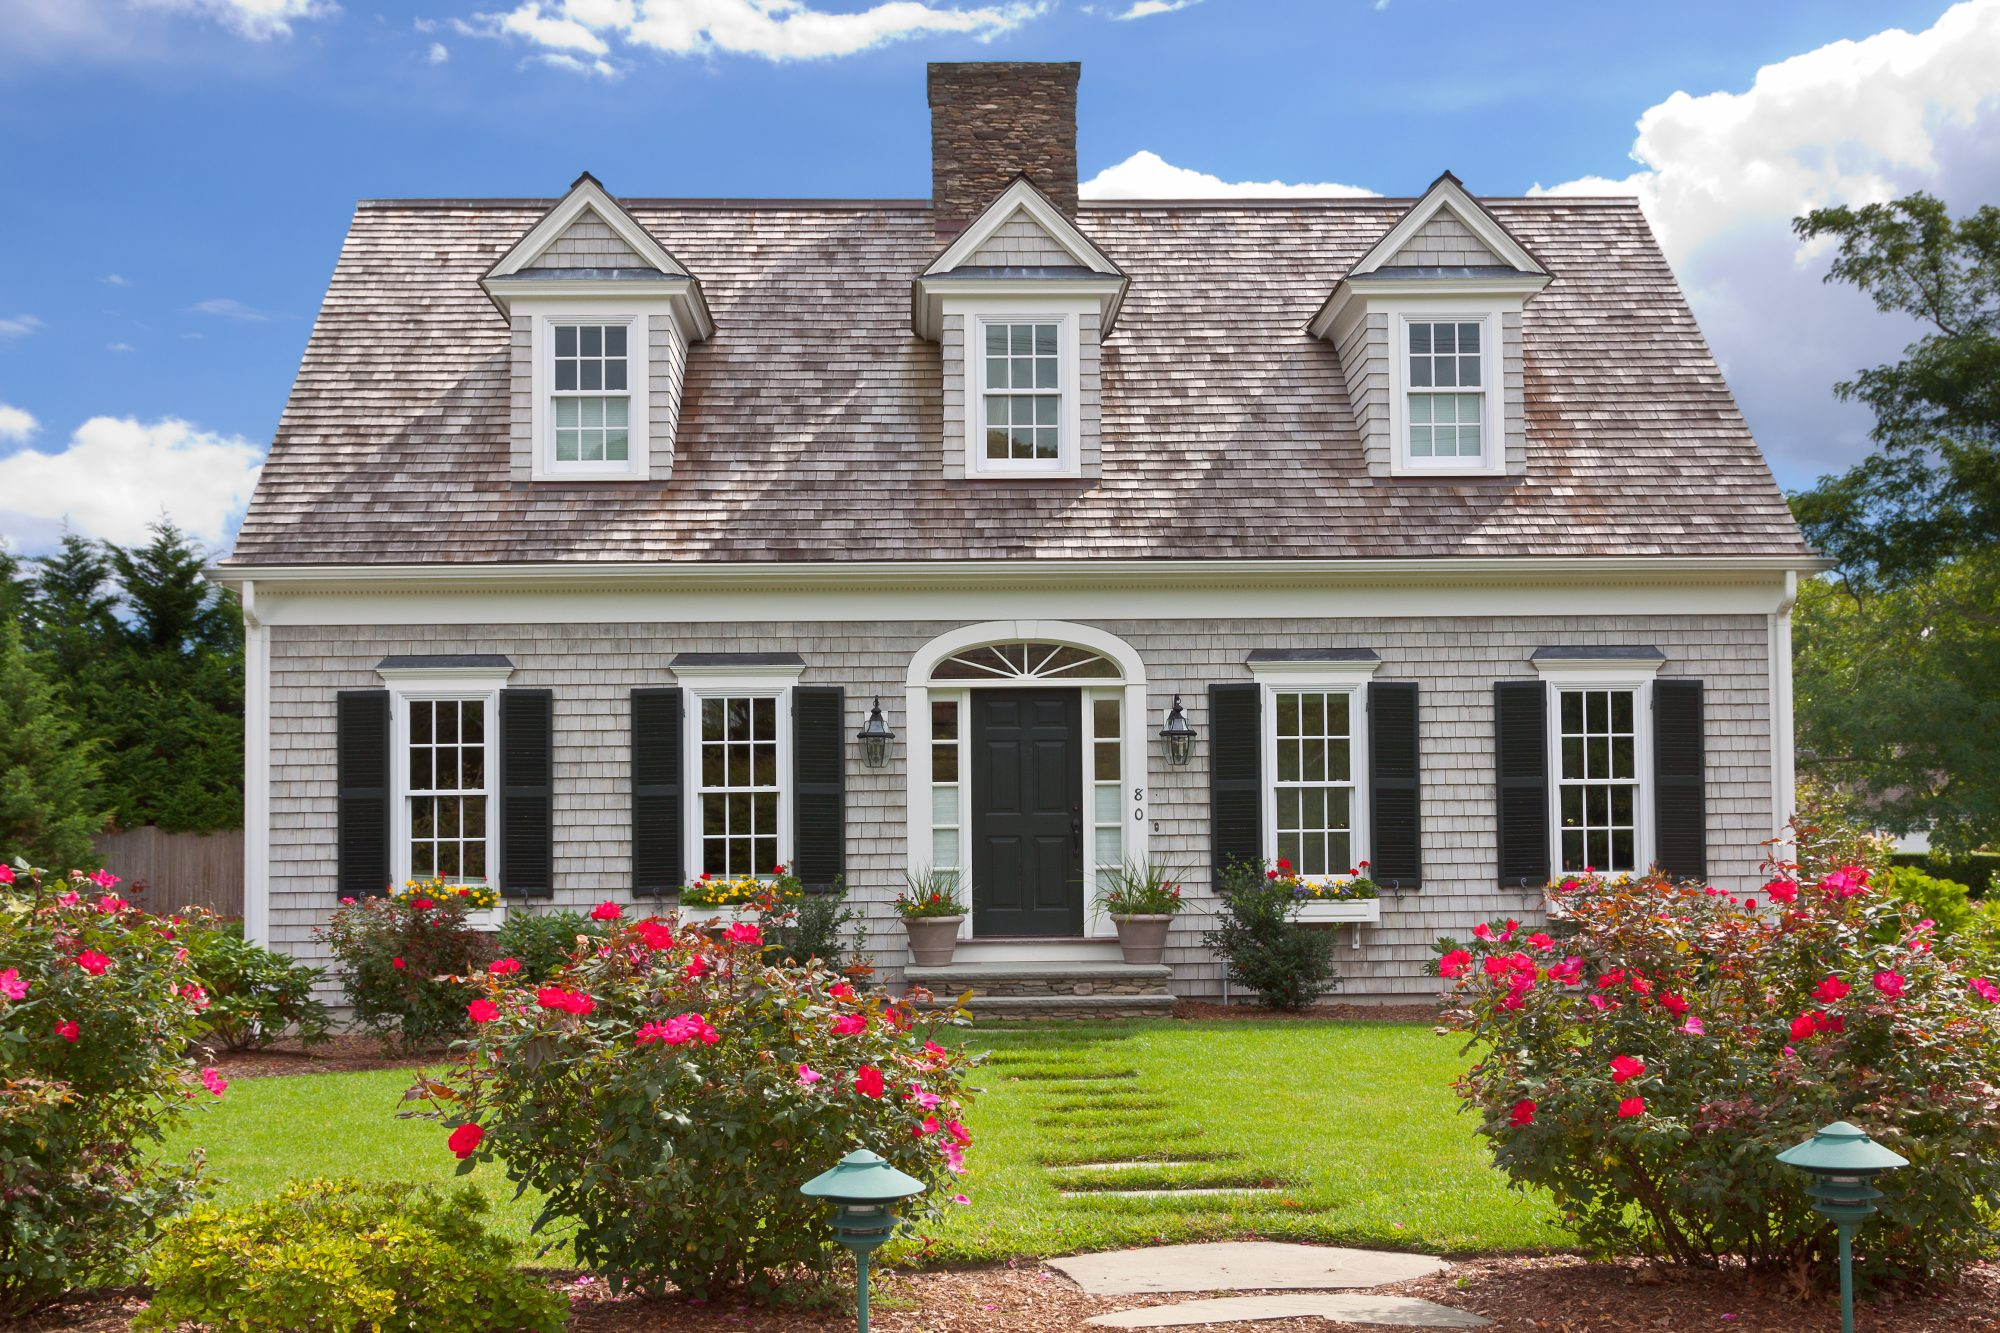 Home Exterior on Cape Cod with Flowers